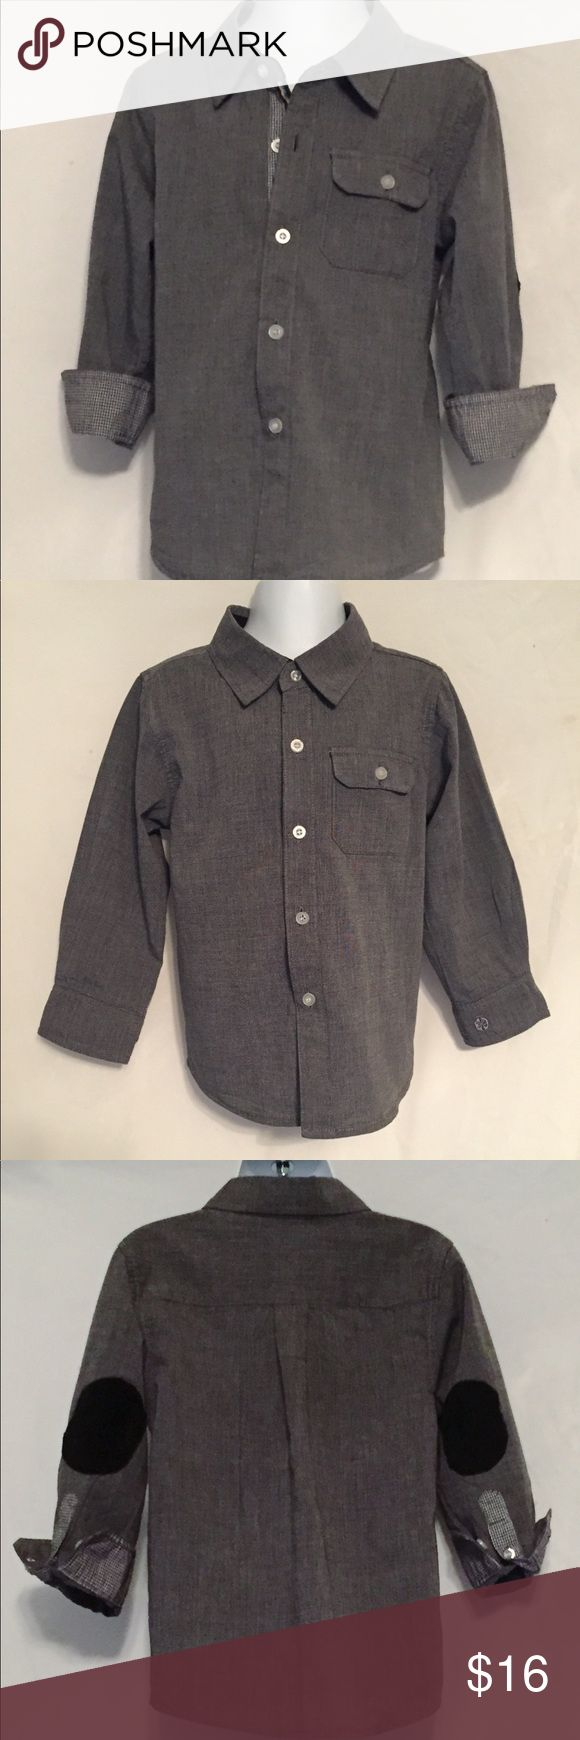 Beetle and Thread Boys Dress Shirt 3T Gray Only Worn two or three times, in excellent condition Beetle and Thread Shirts & Tops Button Down Shirts